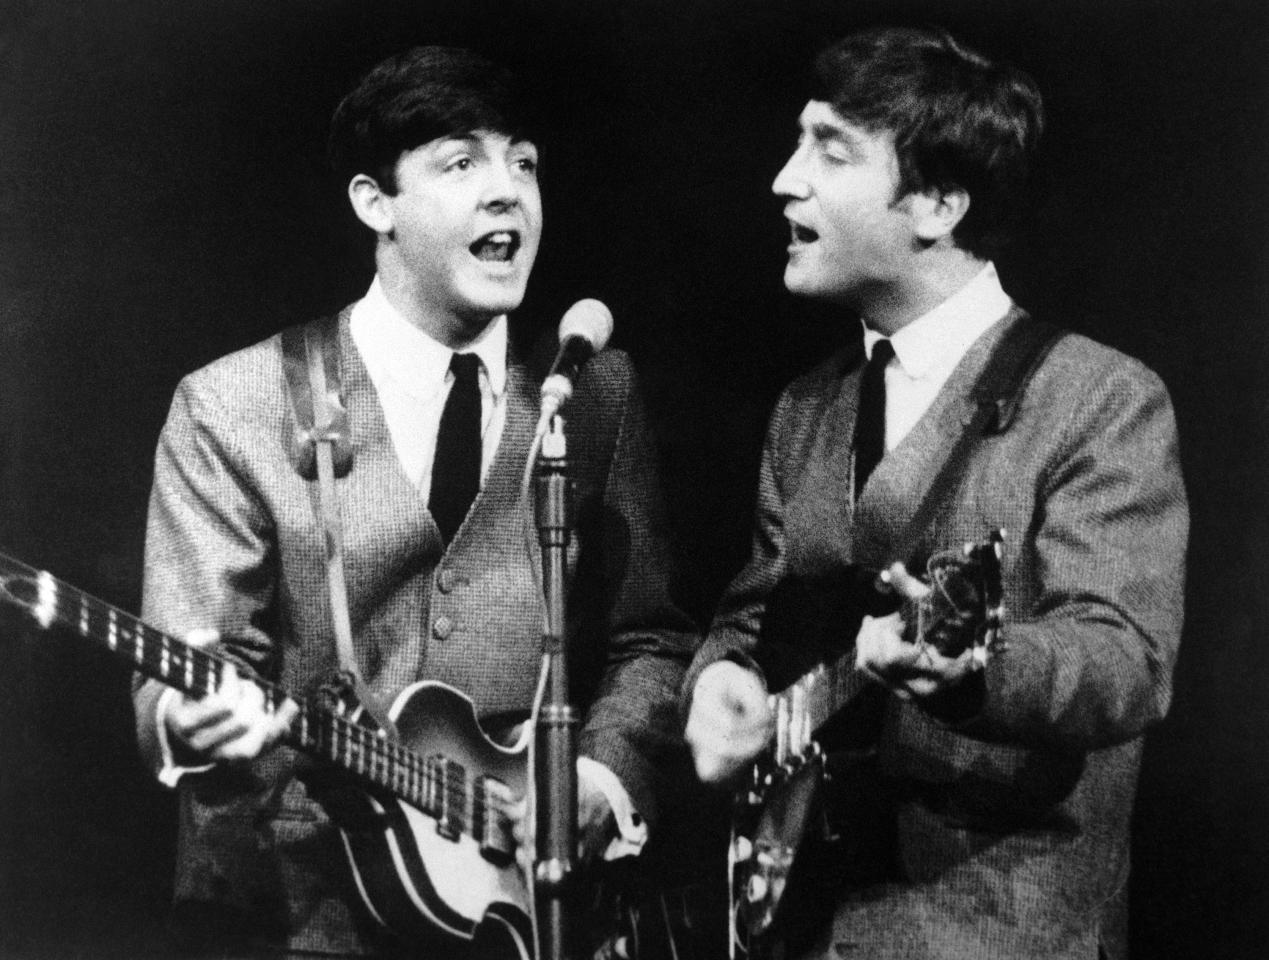 Paul McCartney, a sinistra, and John Lennon, a destra, durante il concerto dei Beatles a Londra, 11 novembre 1963. (AP Photo/N)